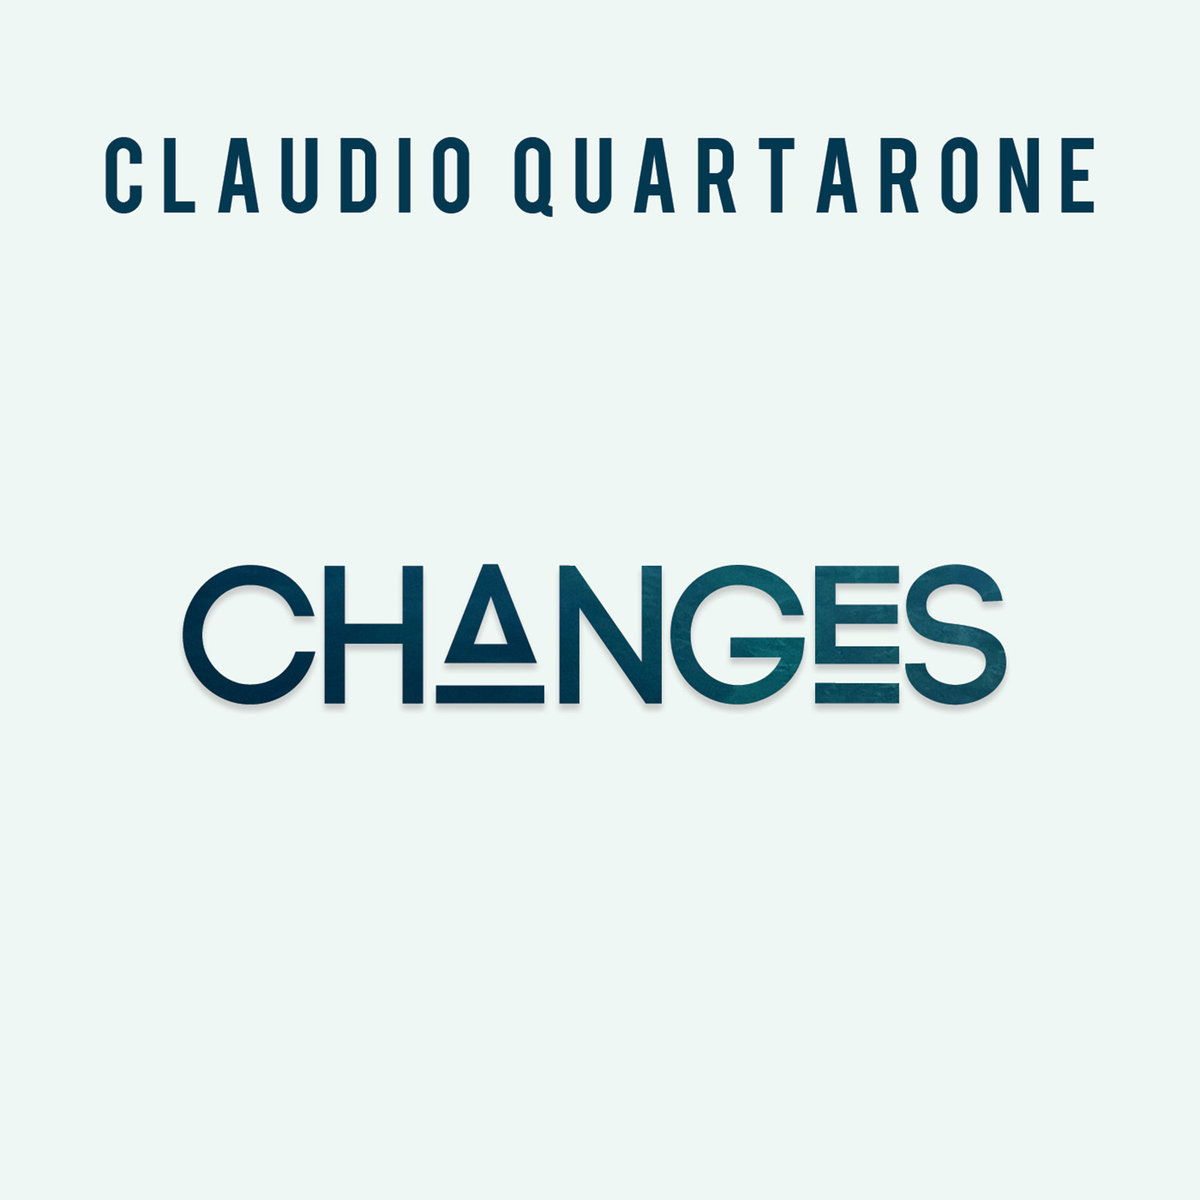 Claudio Quartarone<br/> Changes<br/> Workin' Label, 2018